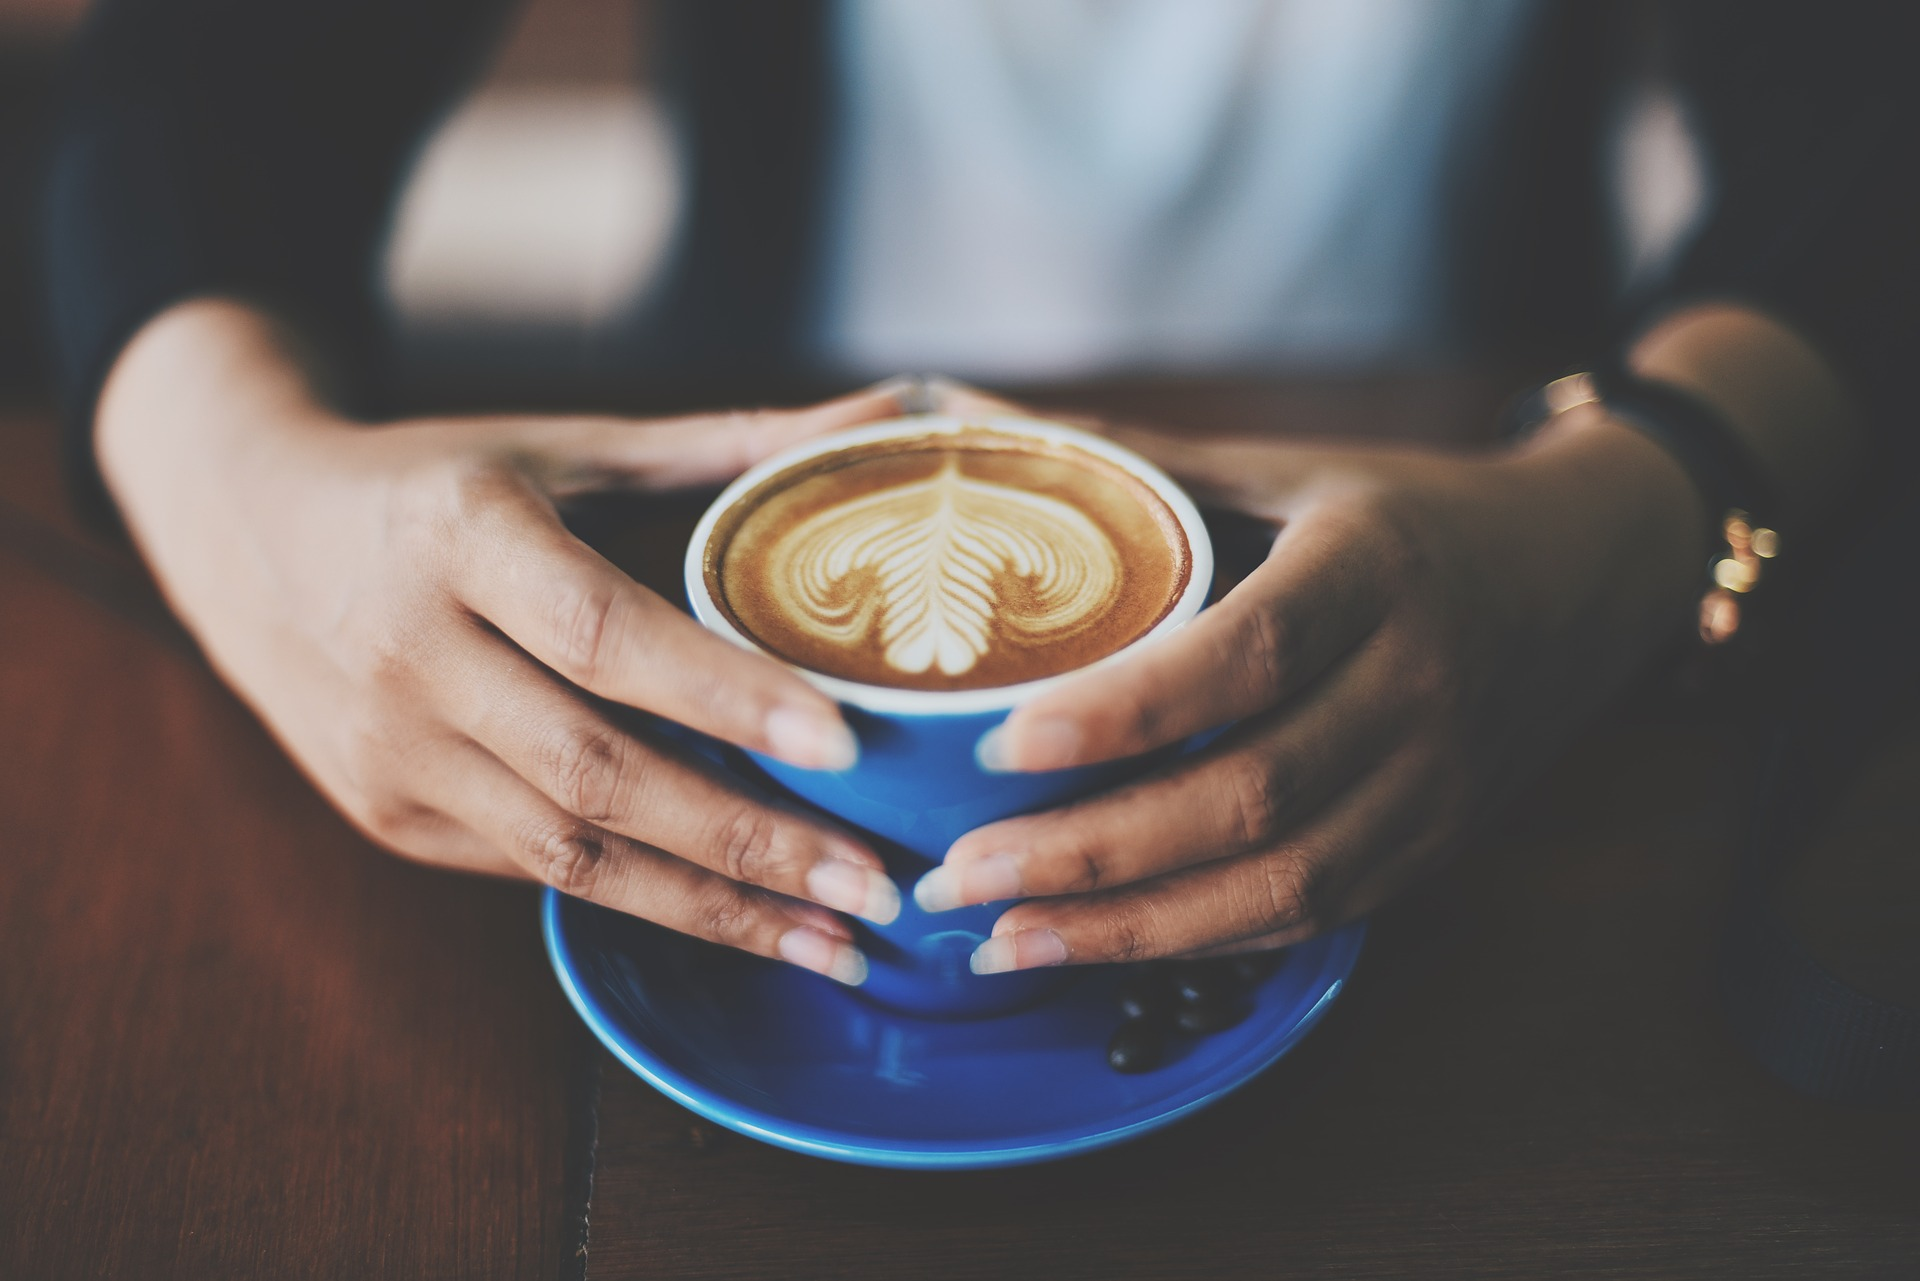 Customer embracing coffee cup in cafe symbolizes inclusion.